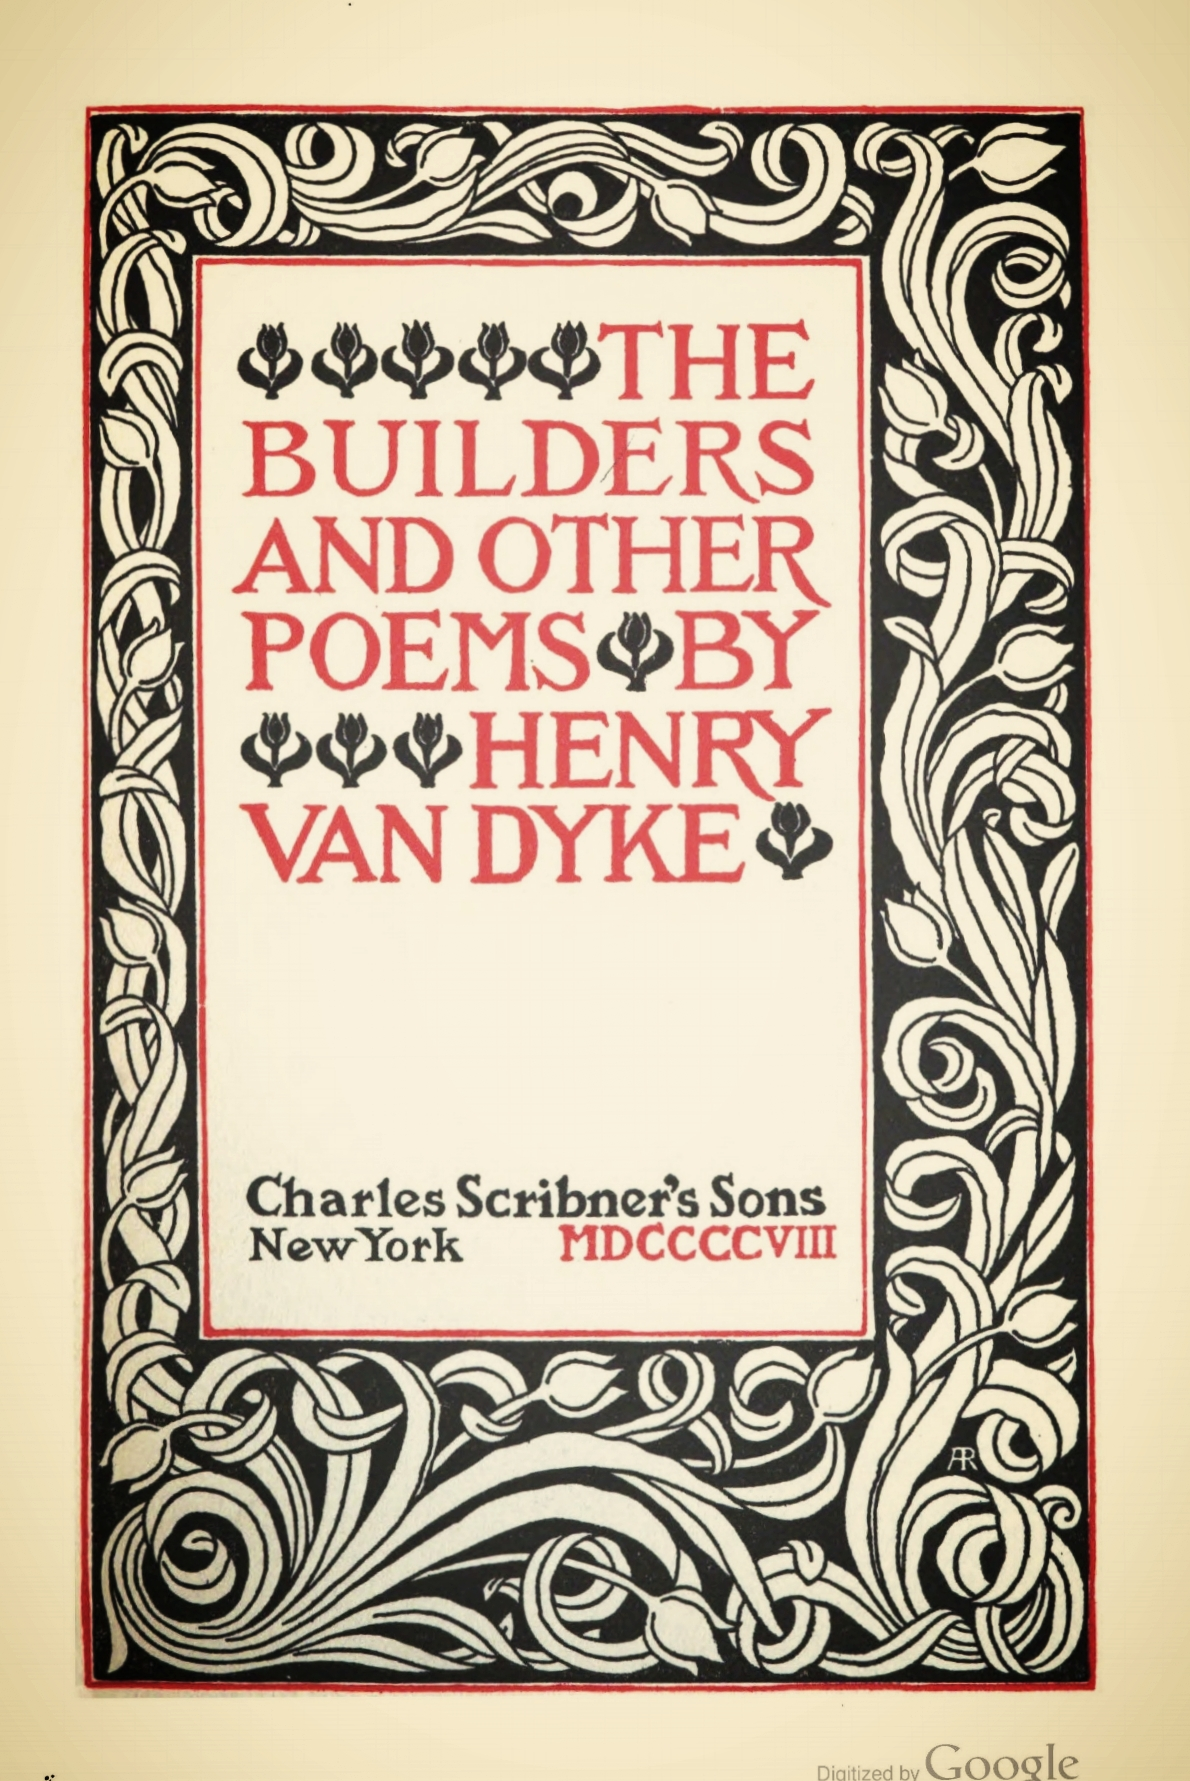 Van Dyke, Jr., Henry, The Builders and Other Poems Title Page.jpg